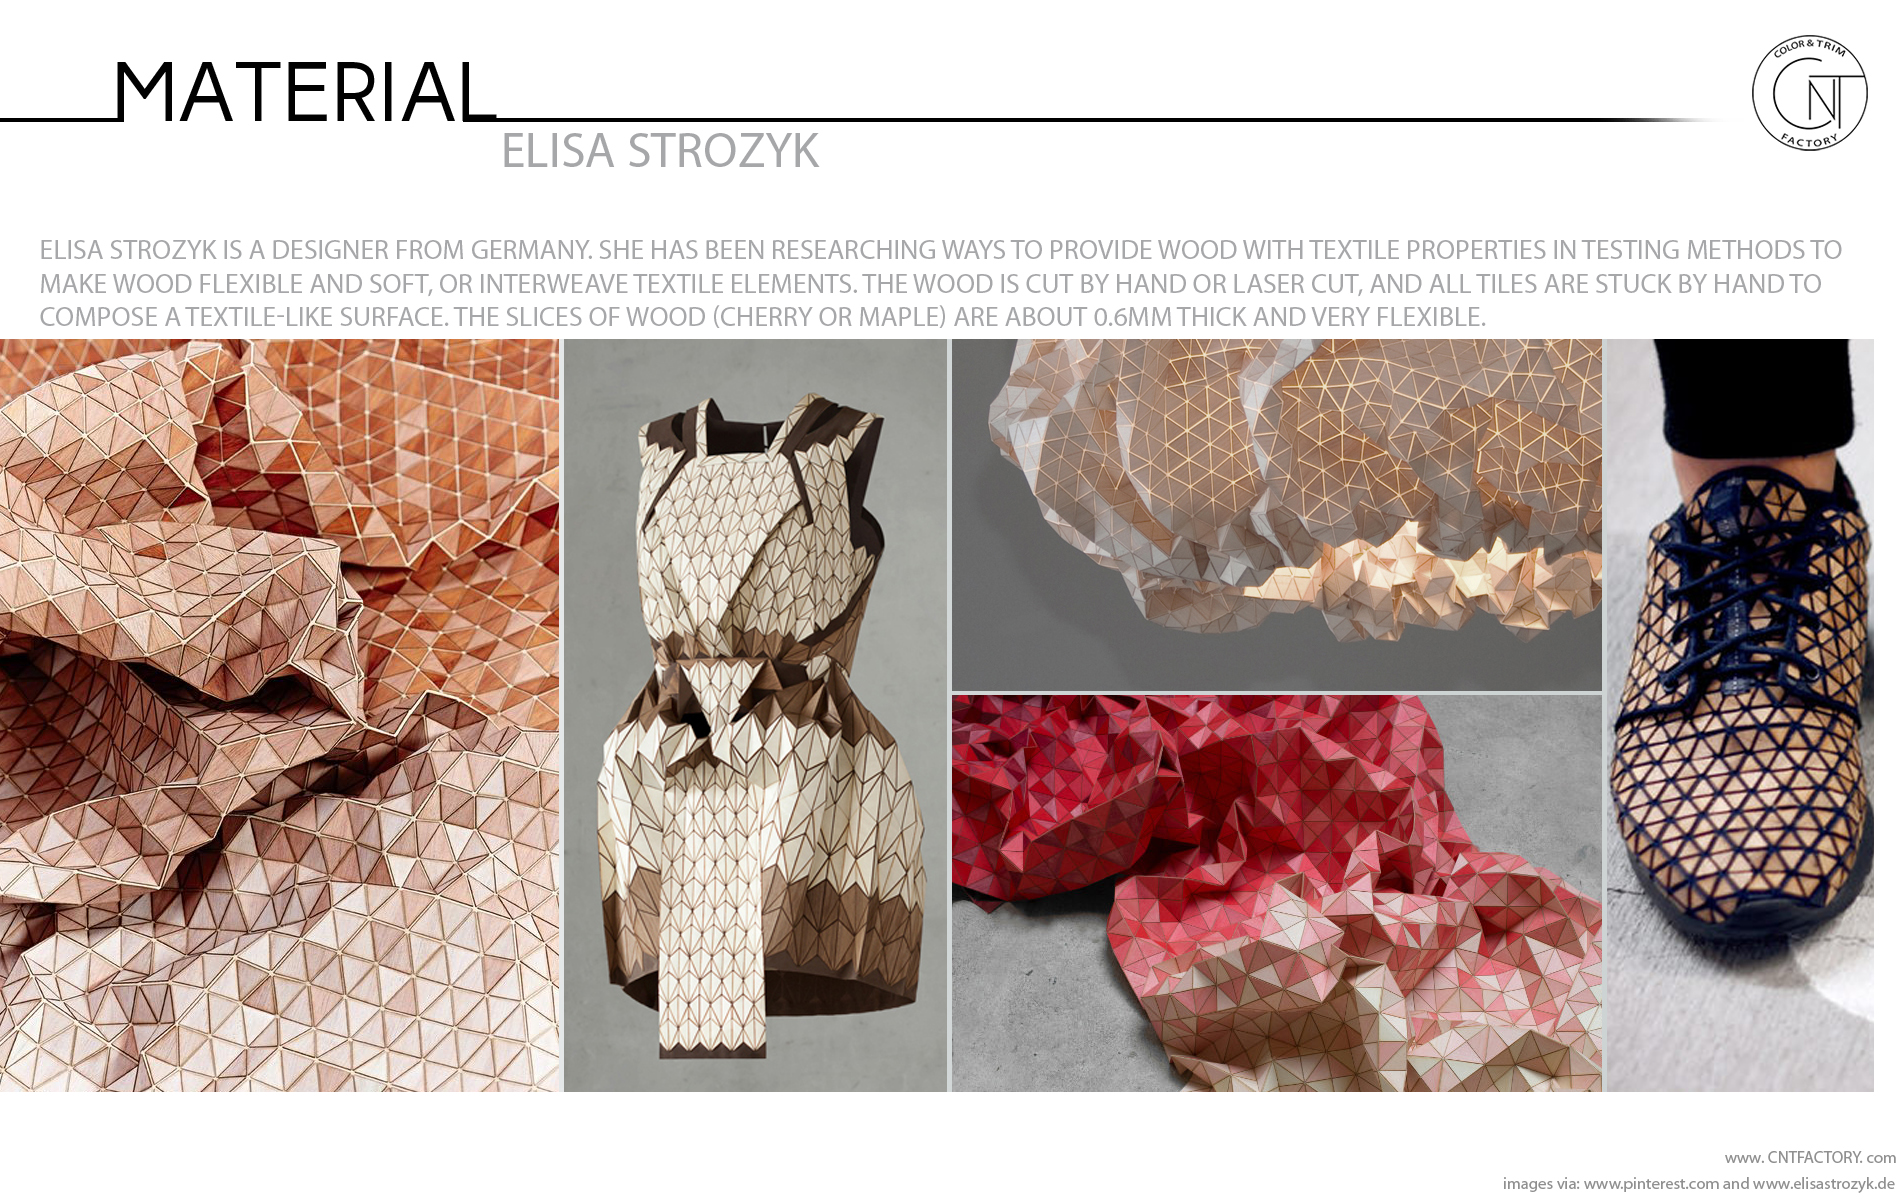 Textile Like Flexible Wood Elisa Strozyk